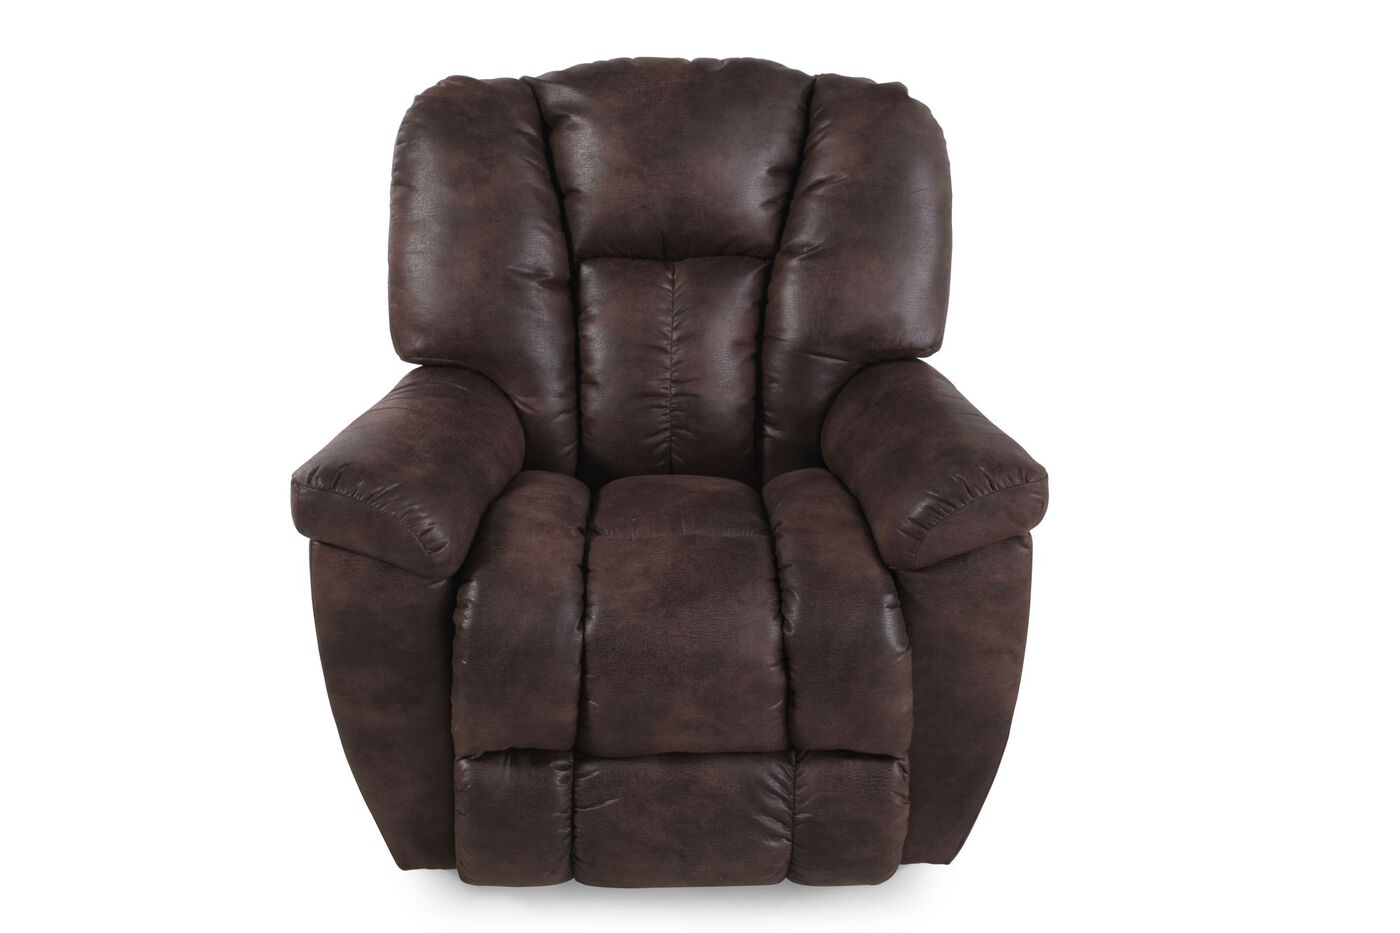 La Z Boy Maverick Sepia Rocker Recliner Mathis Brothers